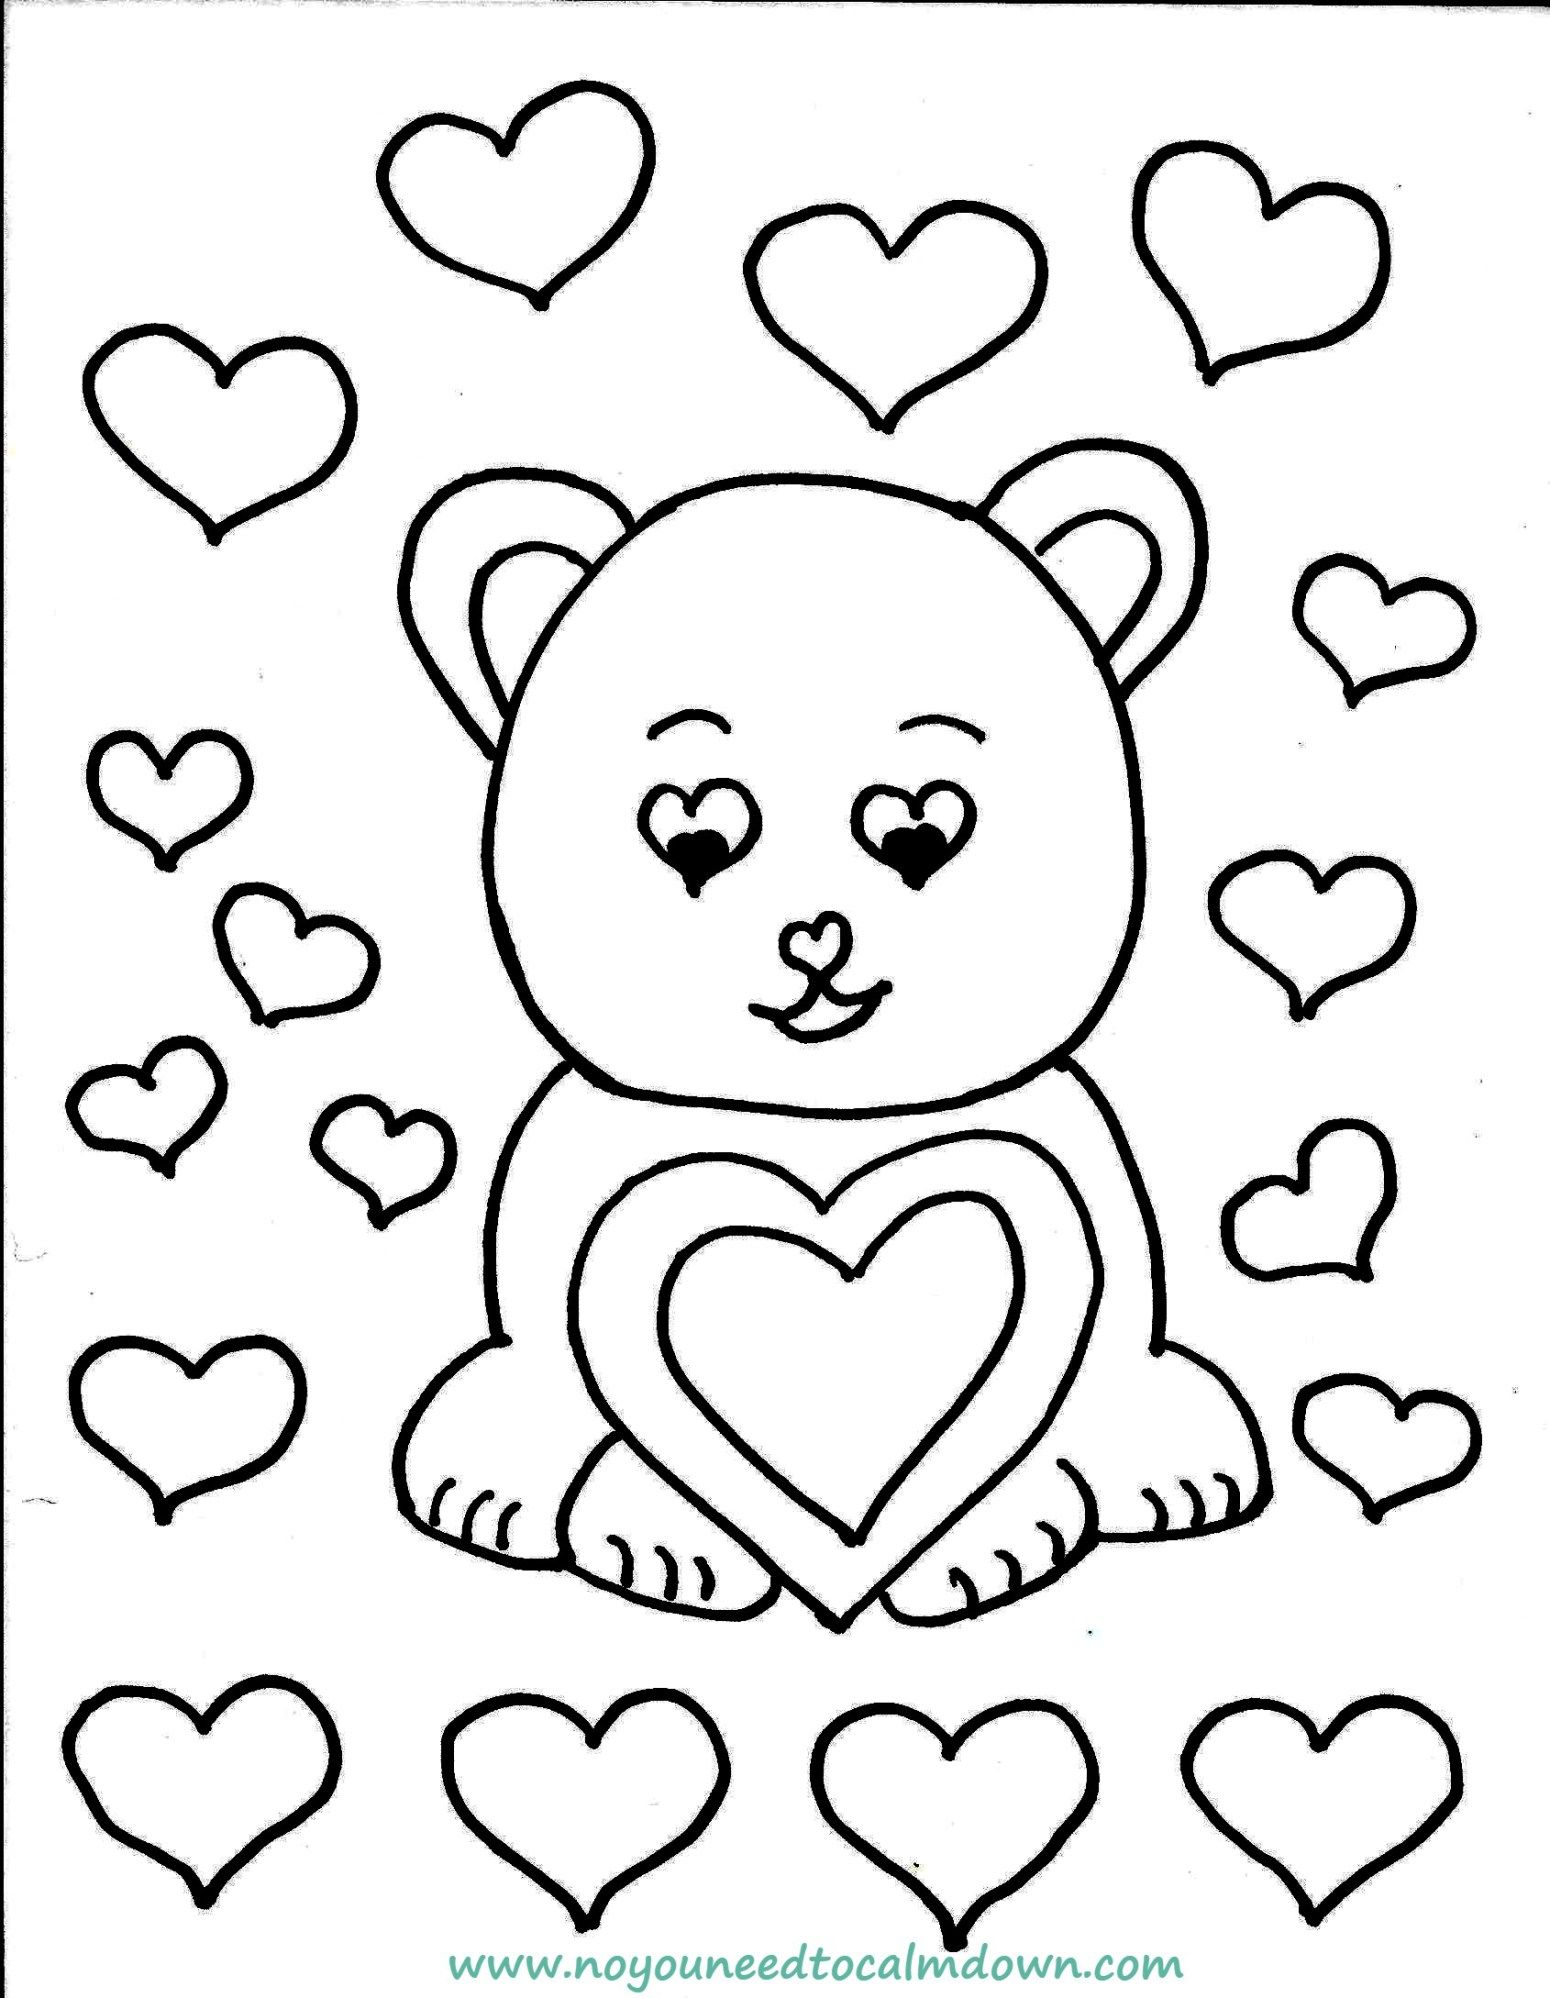 Cute Bear Valentine S Day Coloring Page Free Printable No You Need To Calm Down Valentines Day Coloring Page Valentine Coloring Valentines Day Coloring